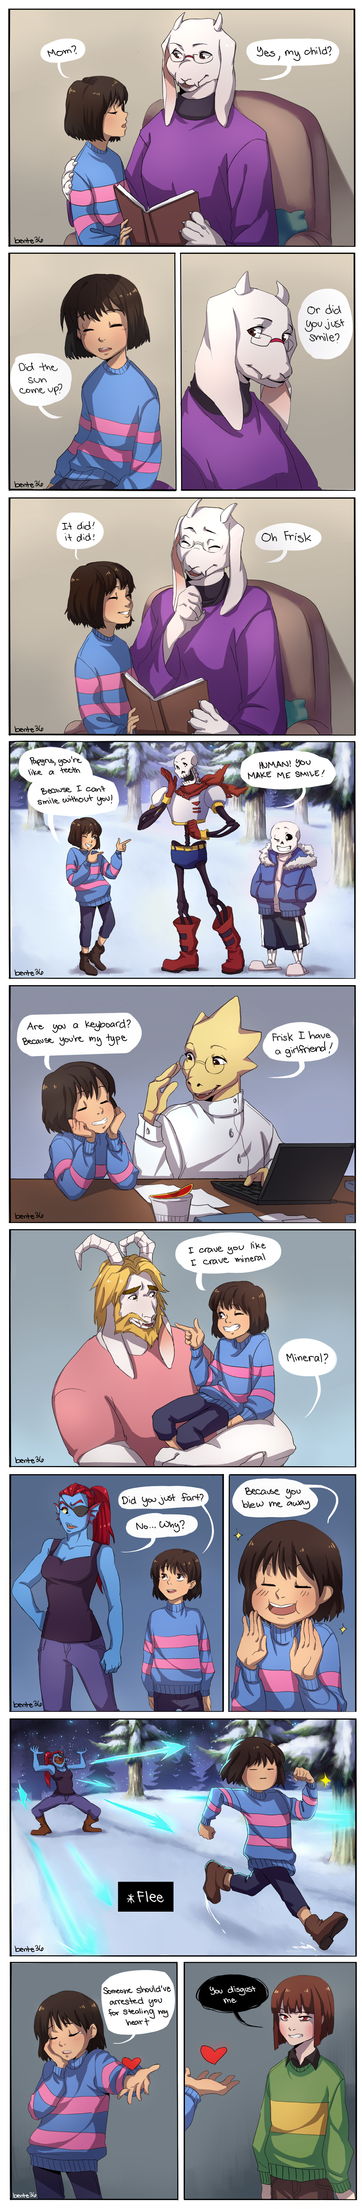 [UnderTale] Pick-up Lines by benteja